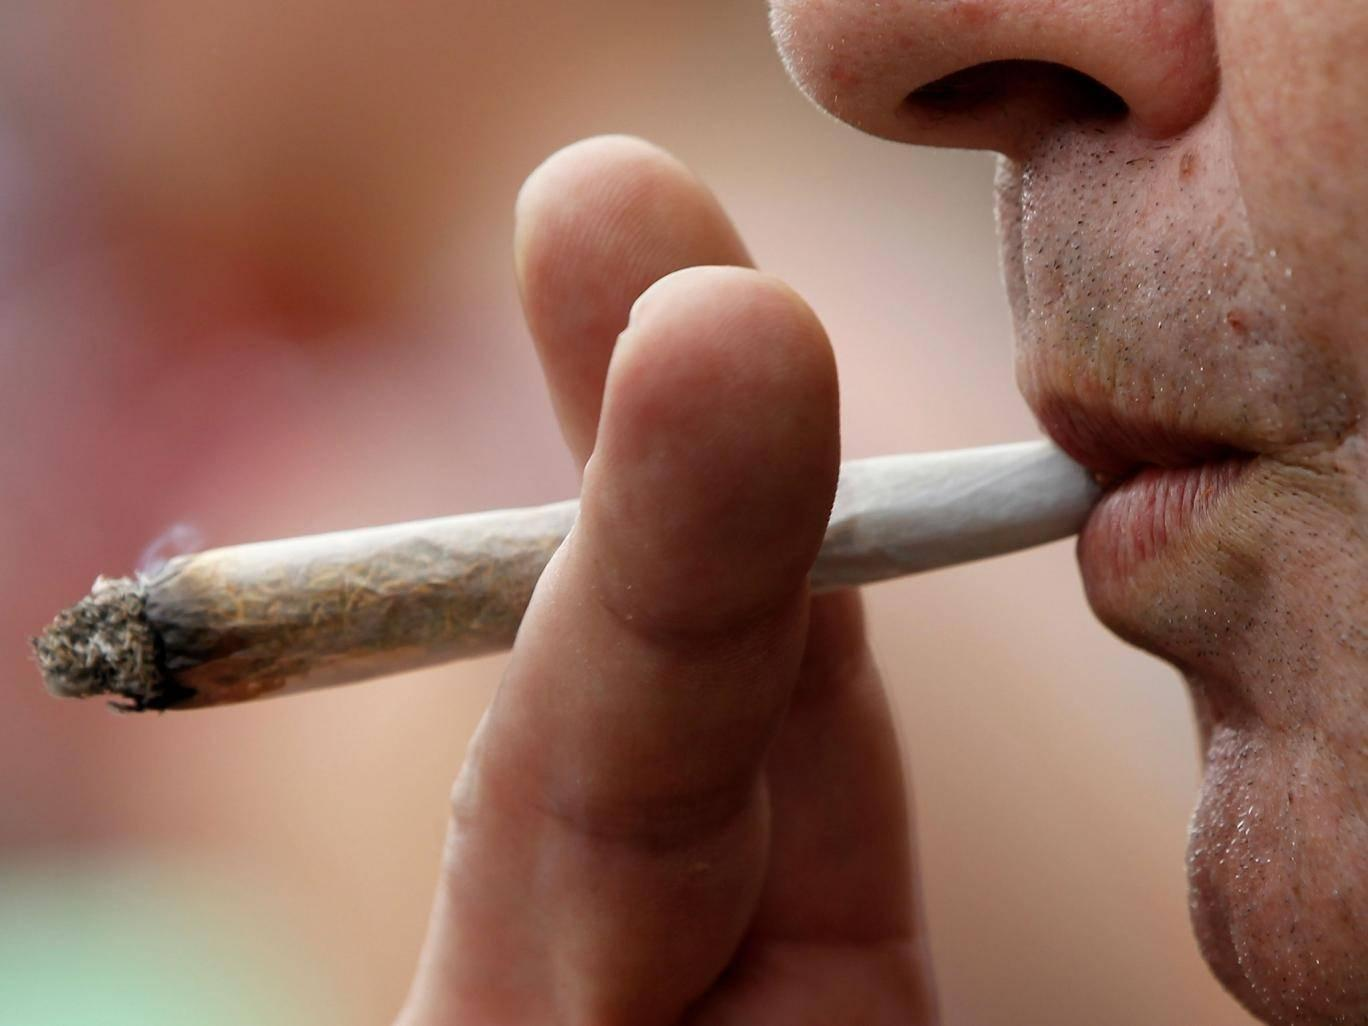 Marijuana users may be more likely to develop diabetes, research finds